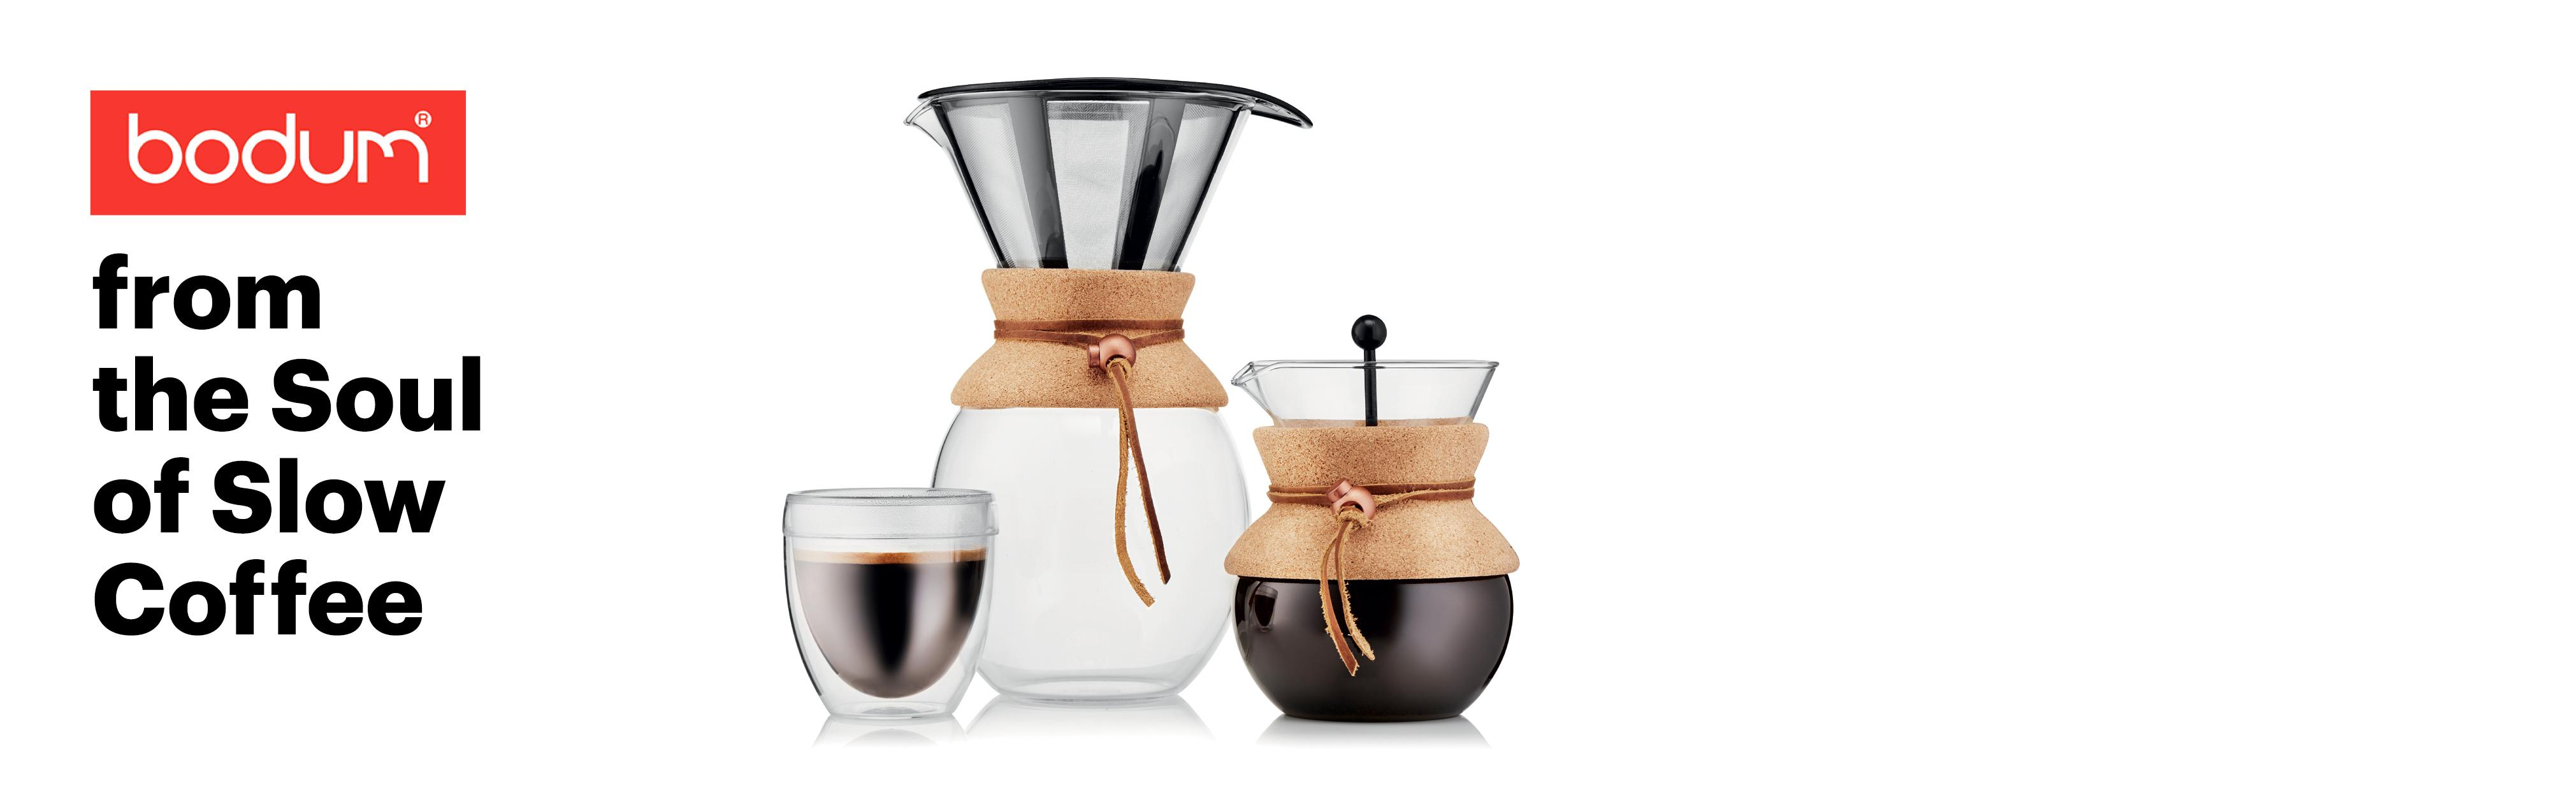 Amazon.com: Bodum 11571-294 Pour Over Coffee Maker with Permanent Filter, 34 oz, Red: Kitchen ...